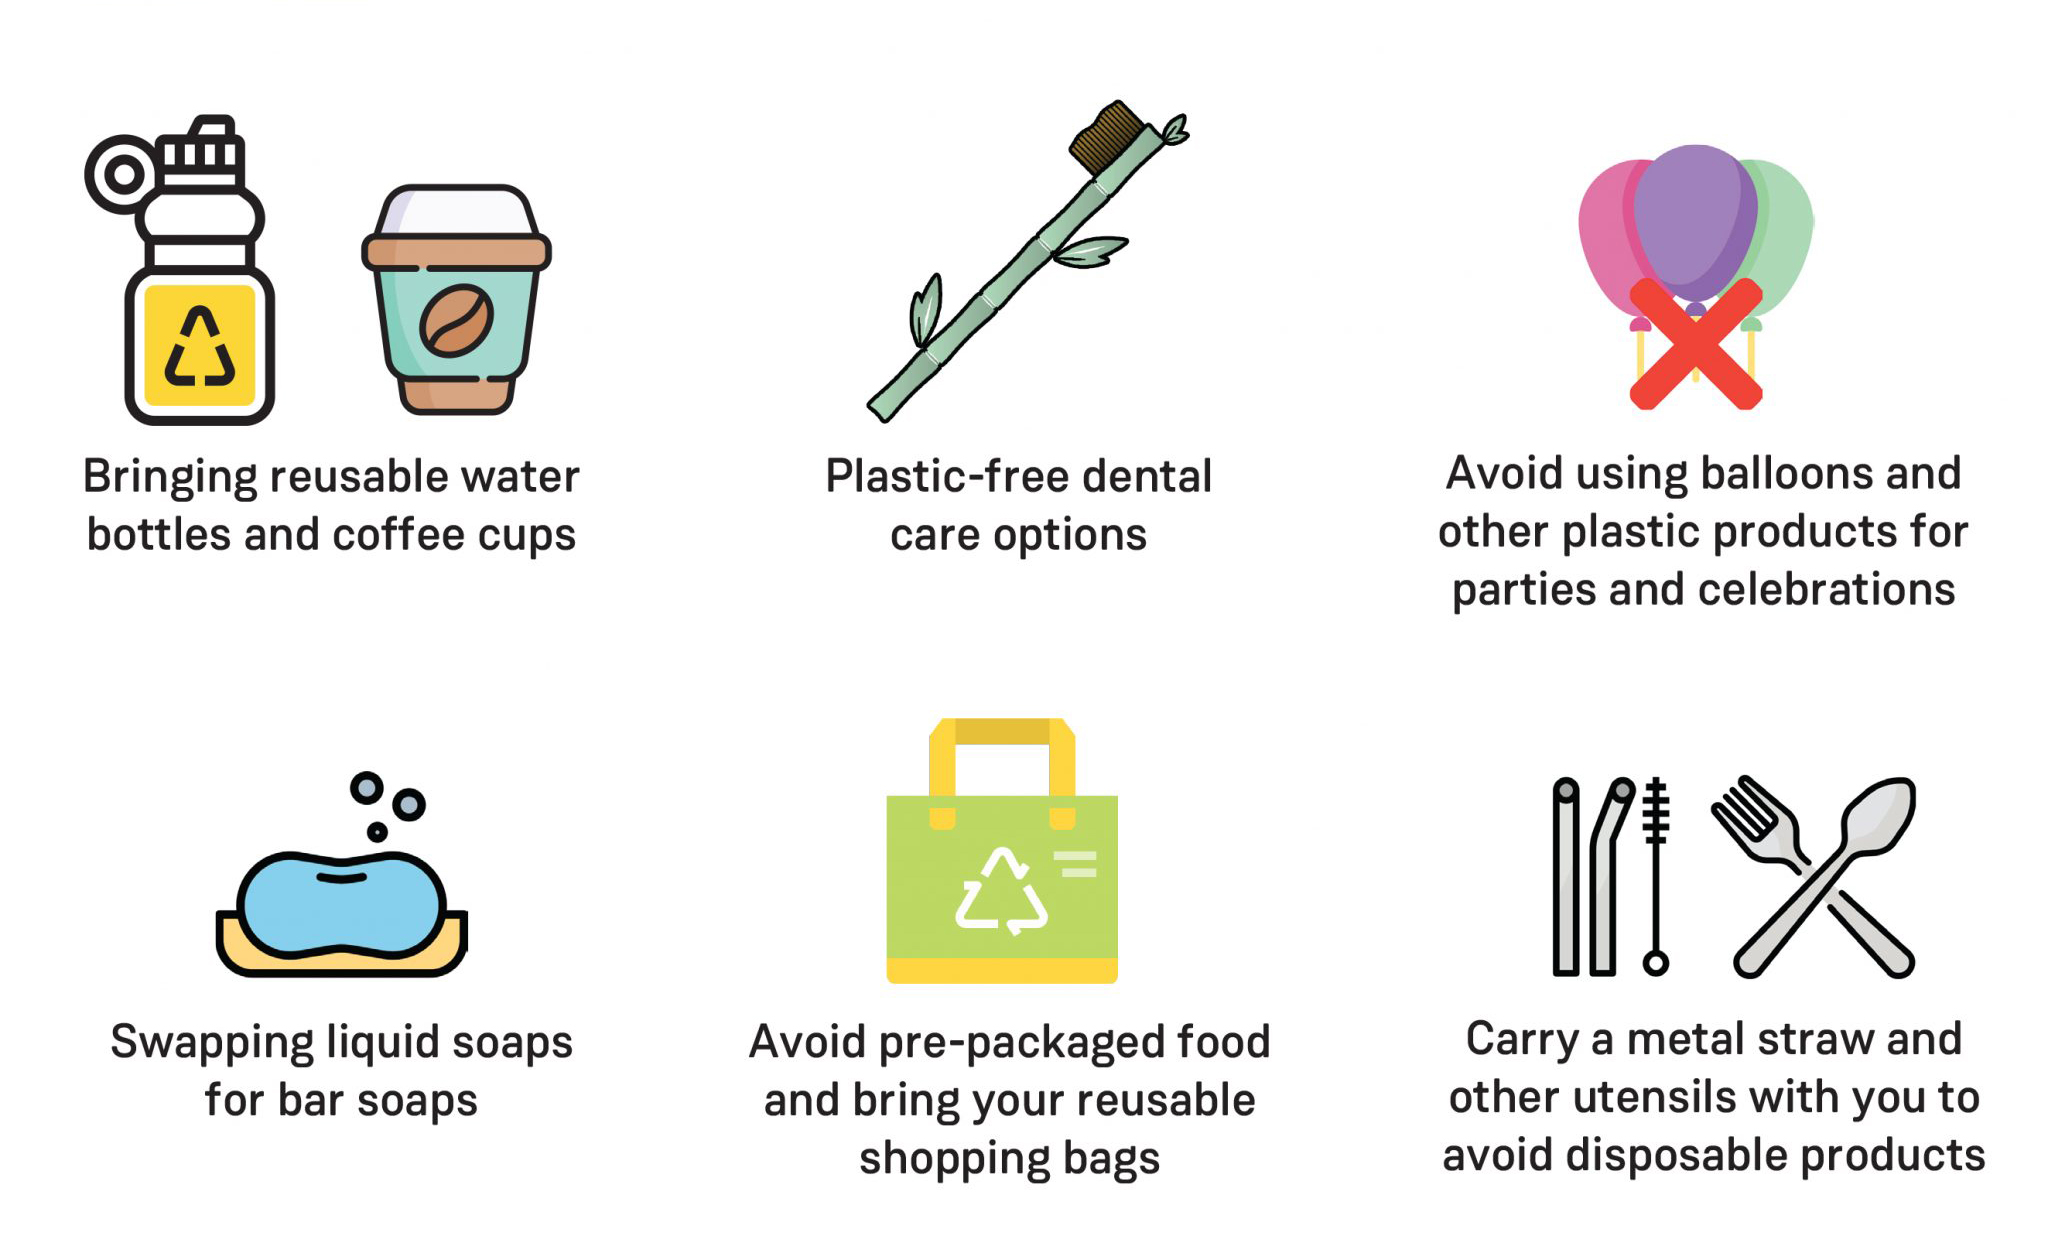 an infographic reducing and even eliminate single-use plastic waste